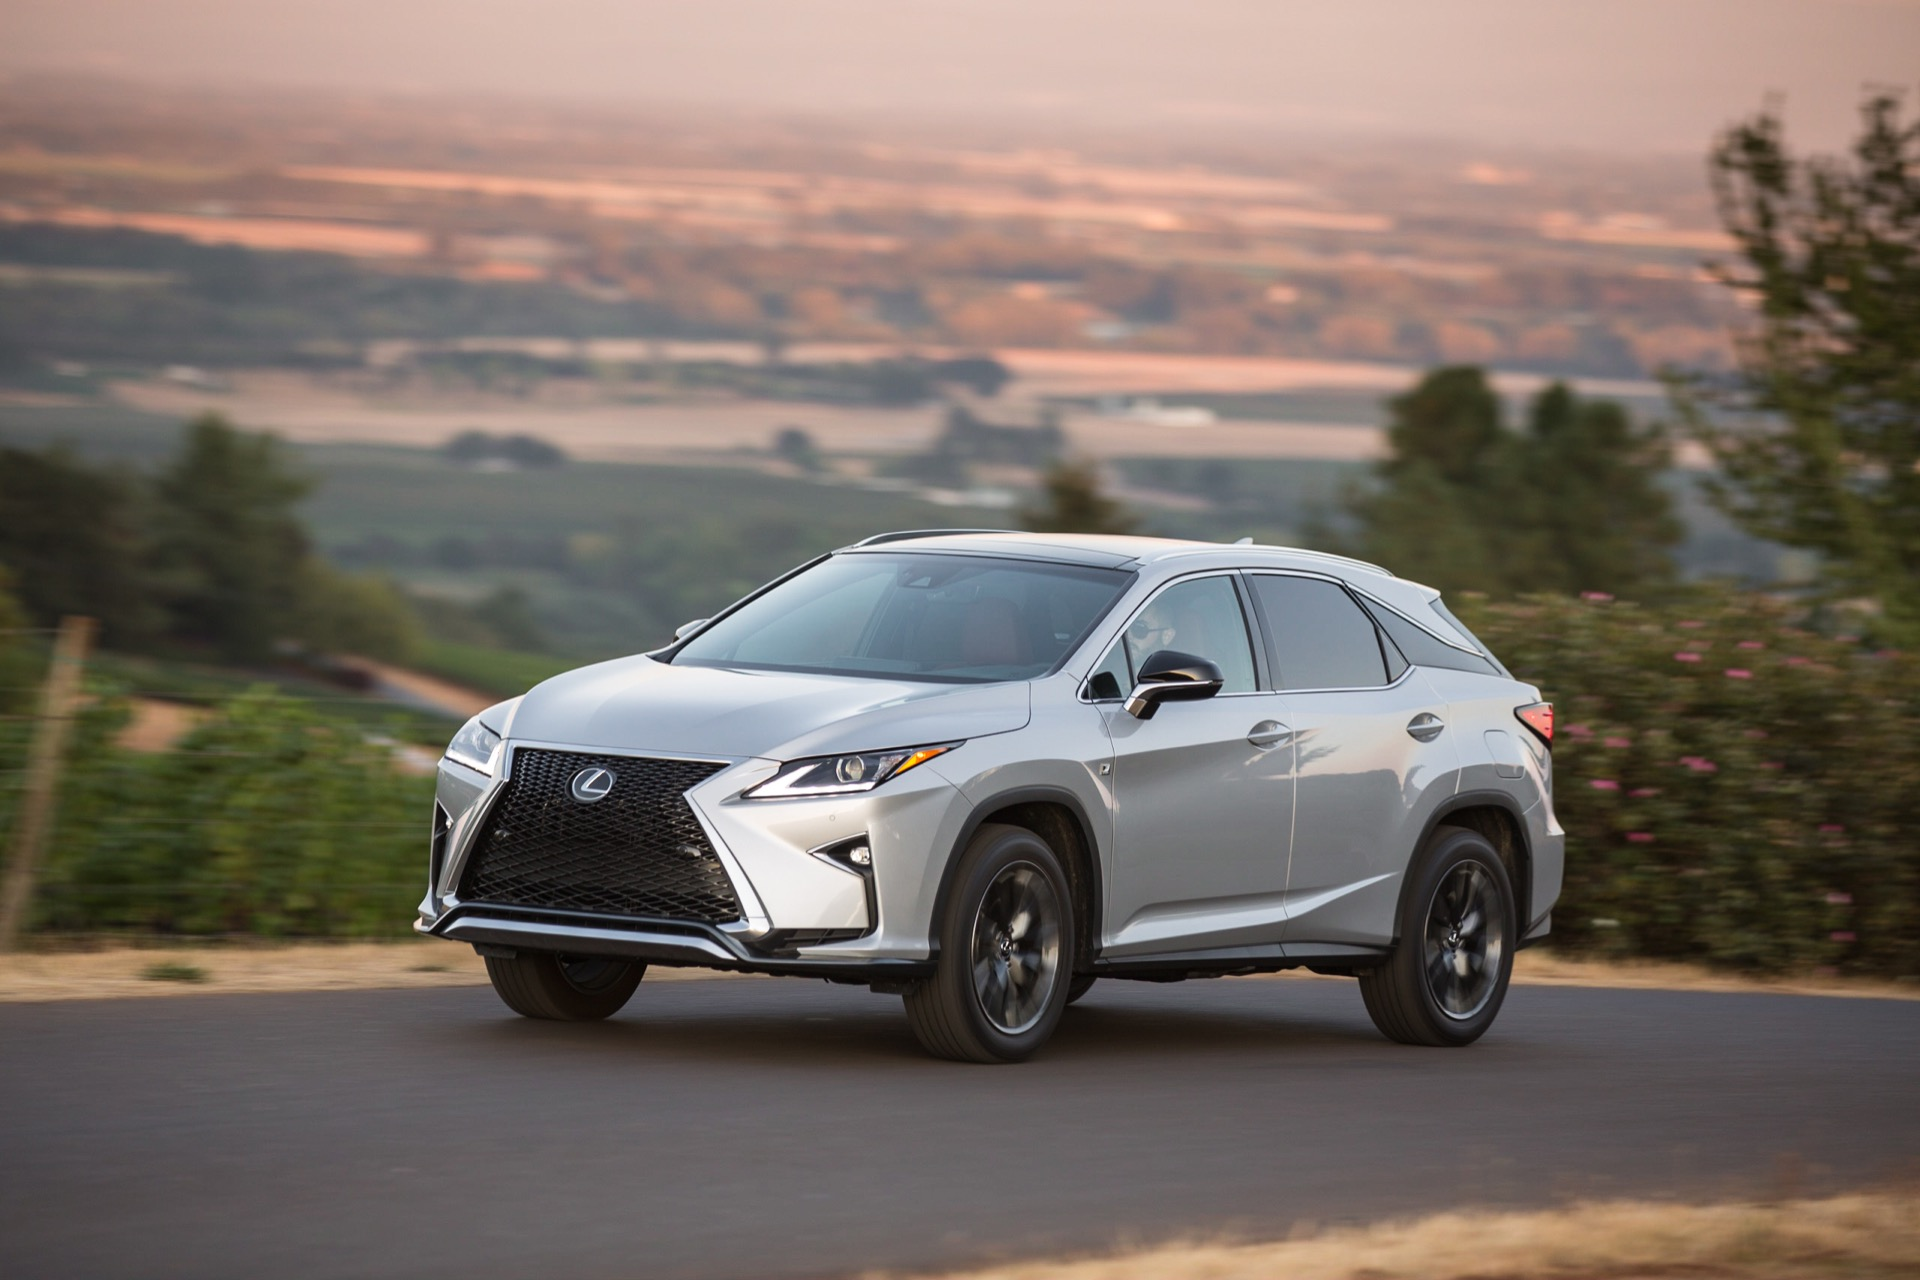 Volvo Of Dallas >> 2016 Lexus RX 350 Performance Review - The Car Connection